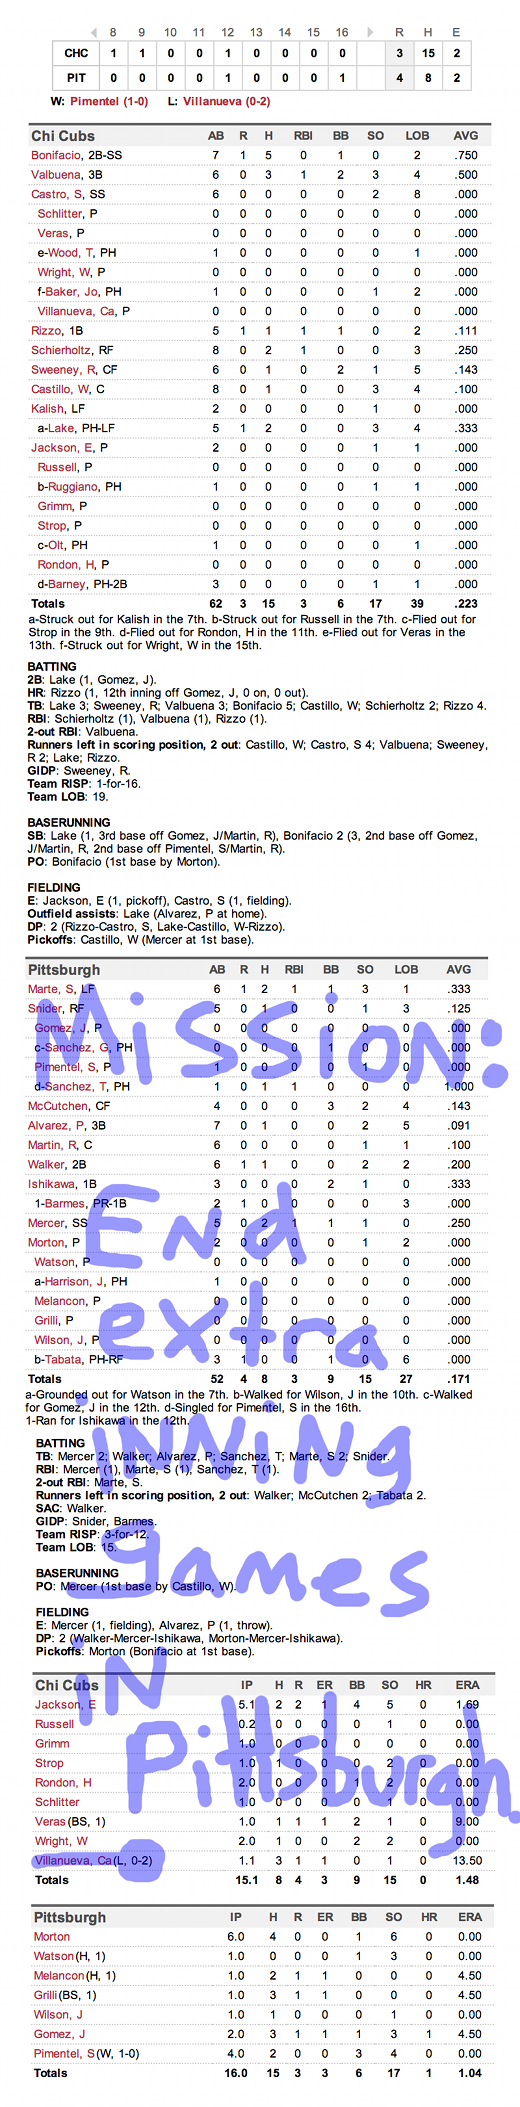 Enhanced Box Score: Cubs 3, Pirates 4 – April 2, 2014